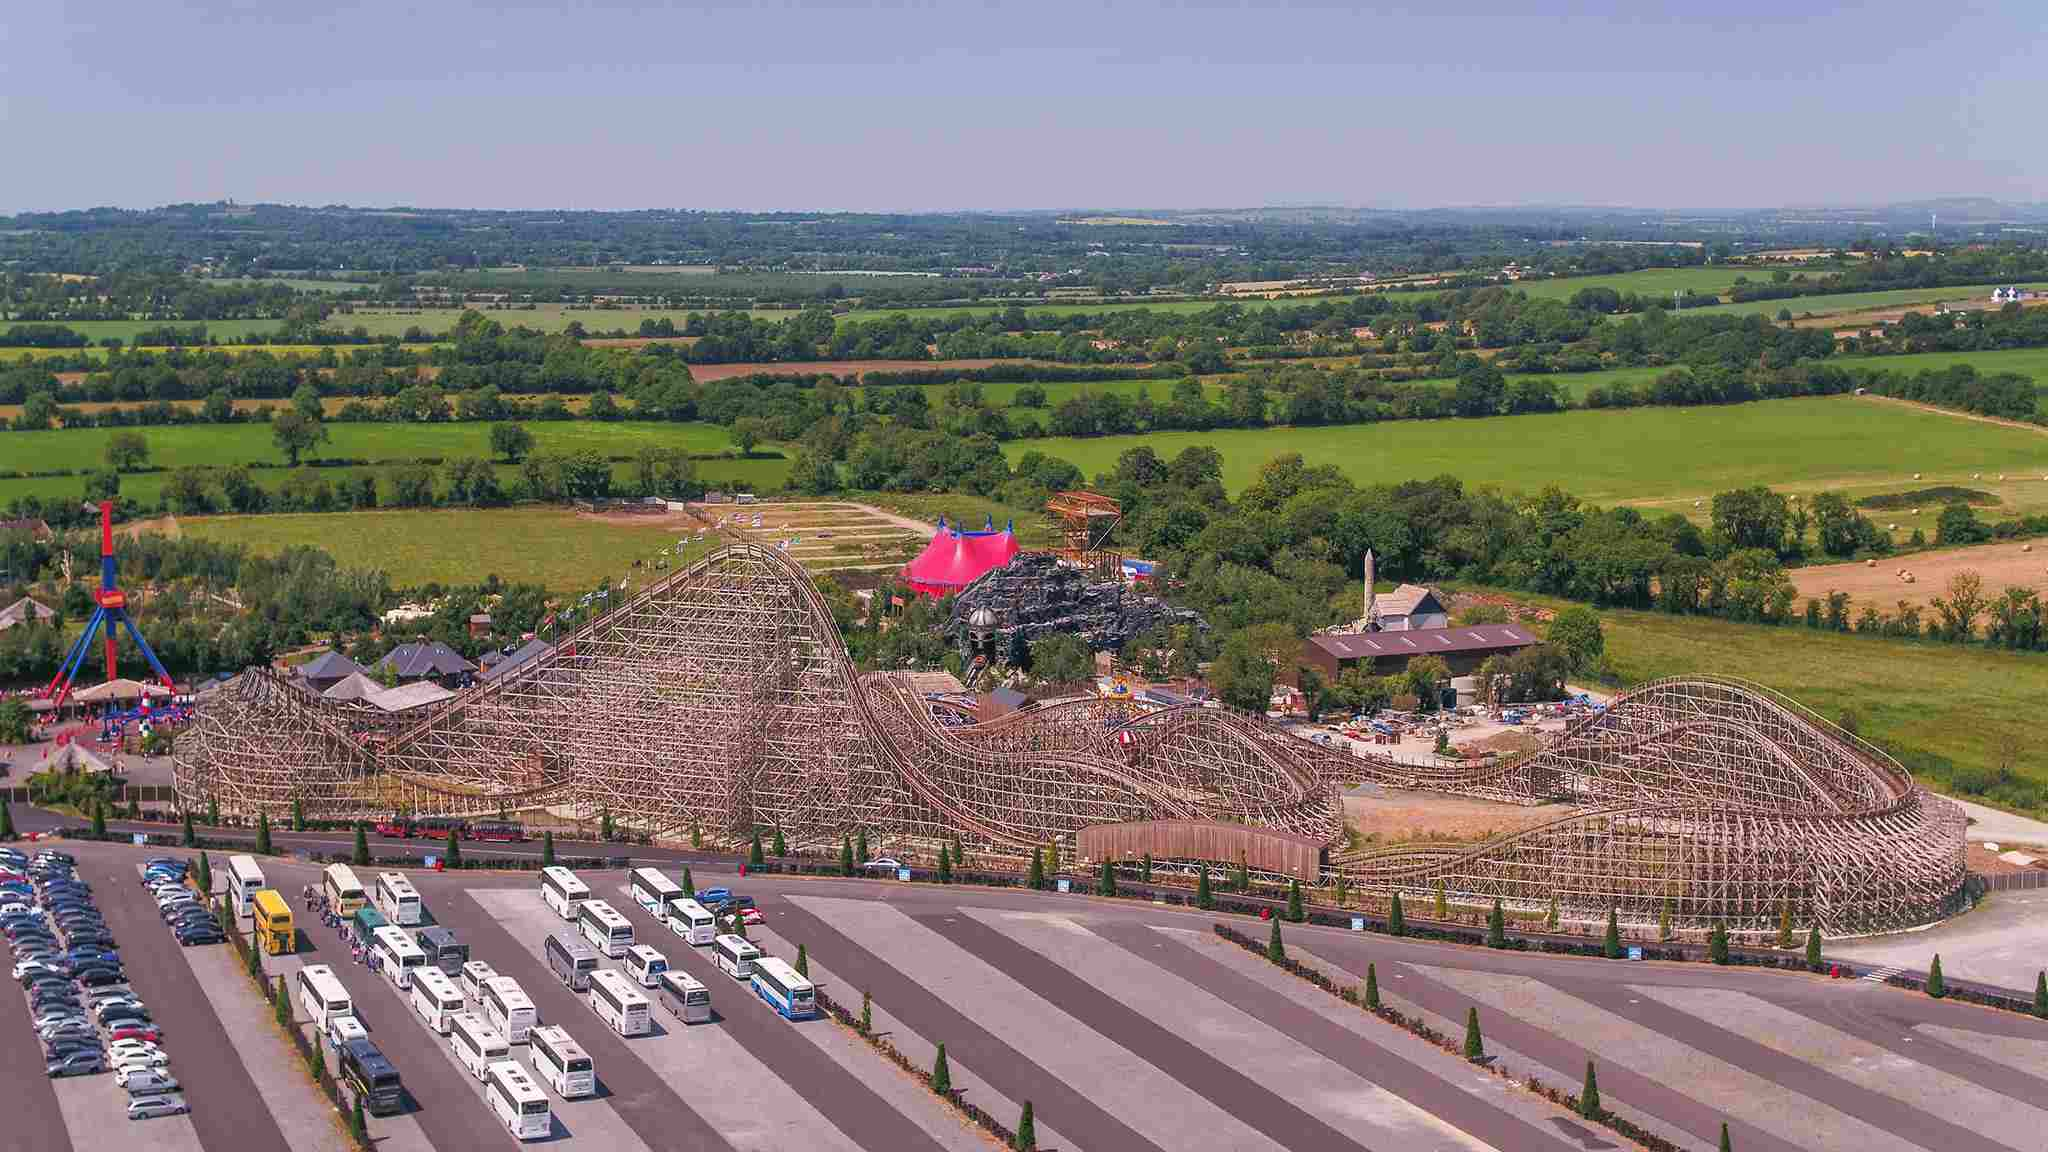 Helicopter view of Tayto Park